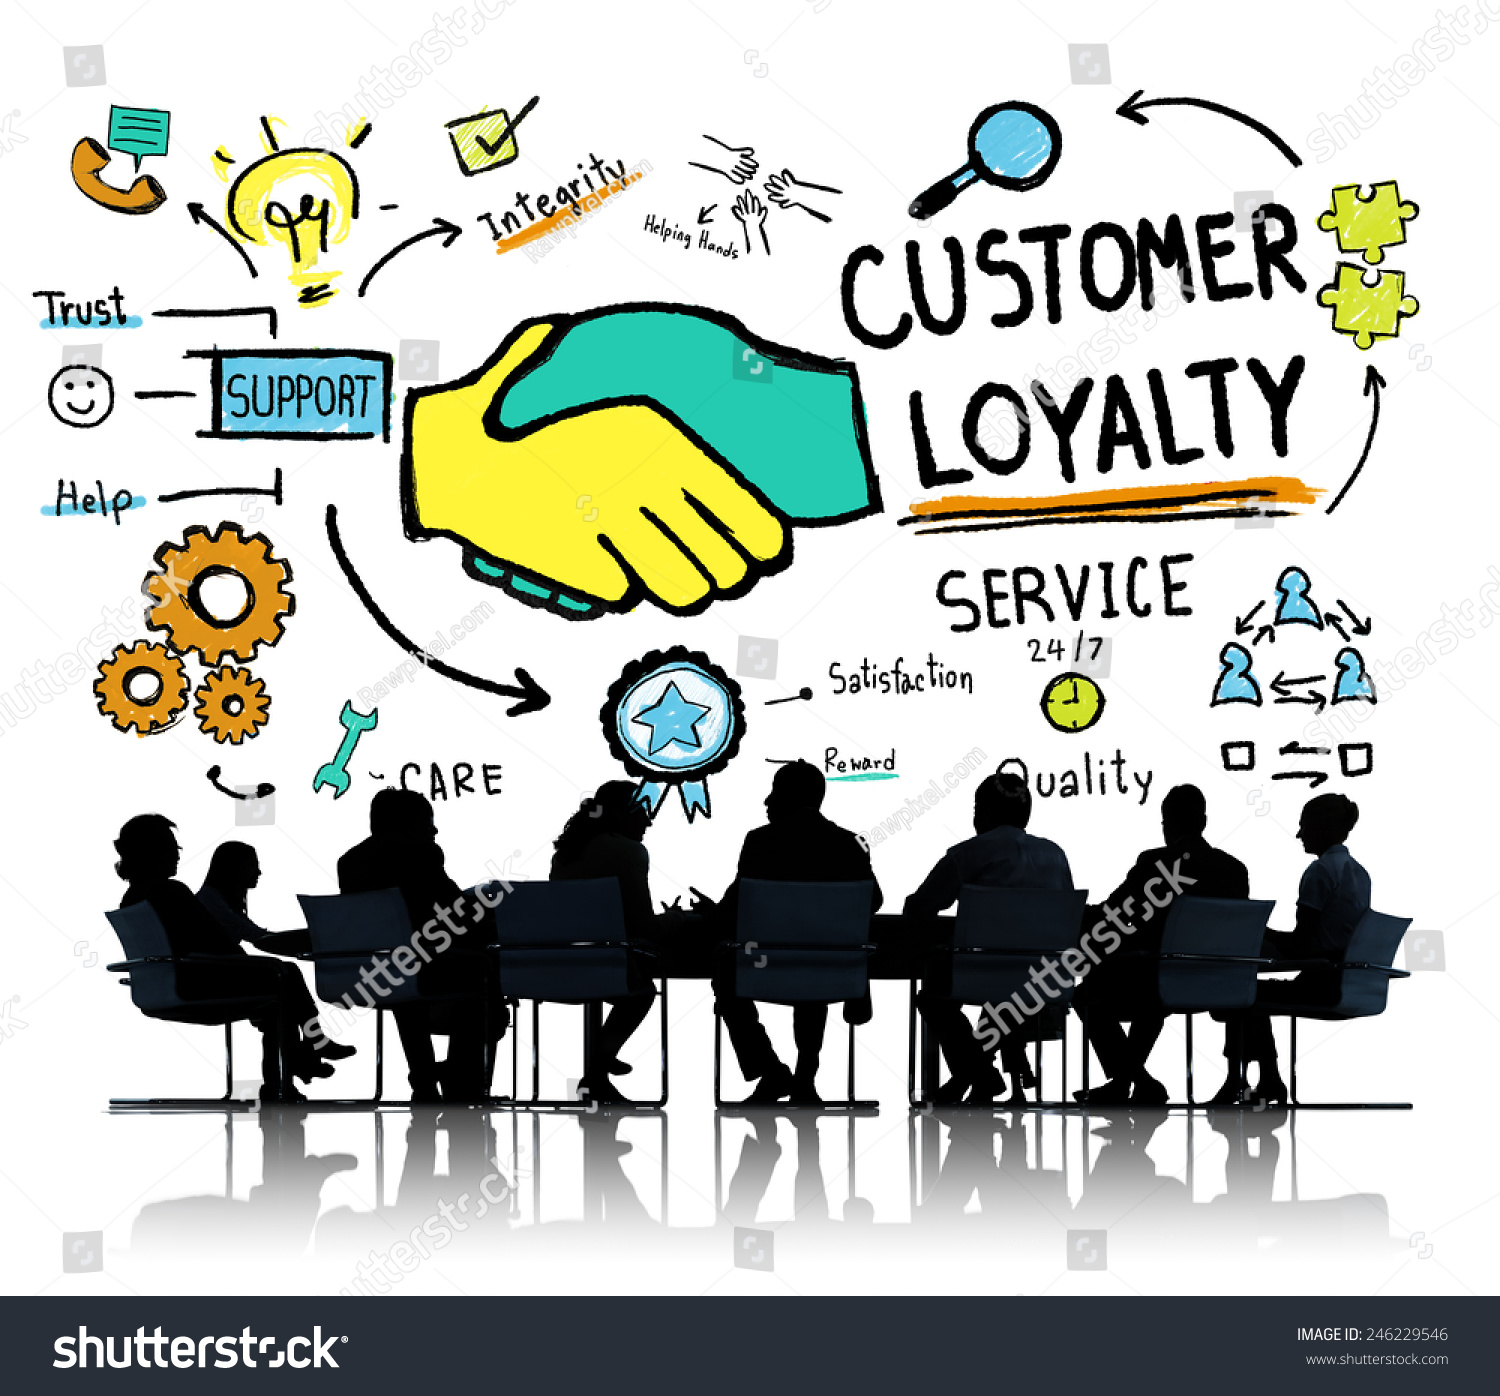 The Concept of customer loyalty